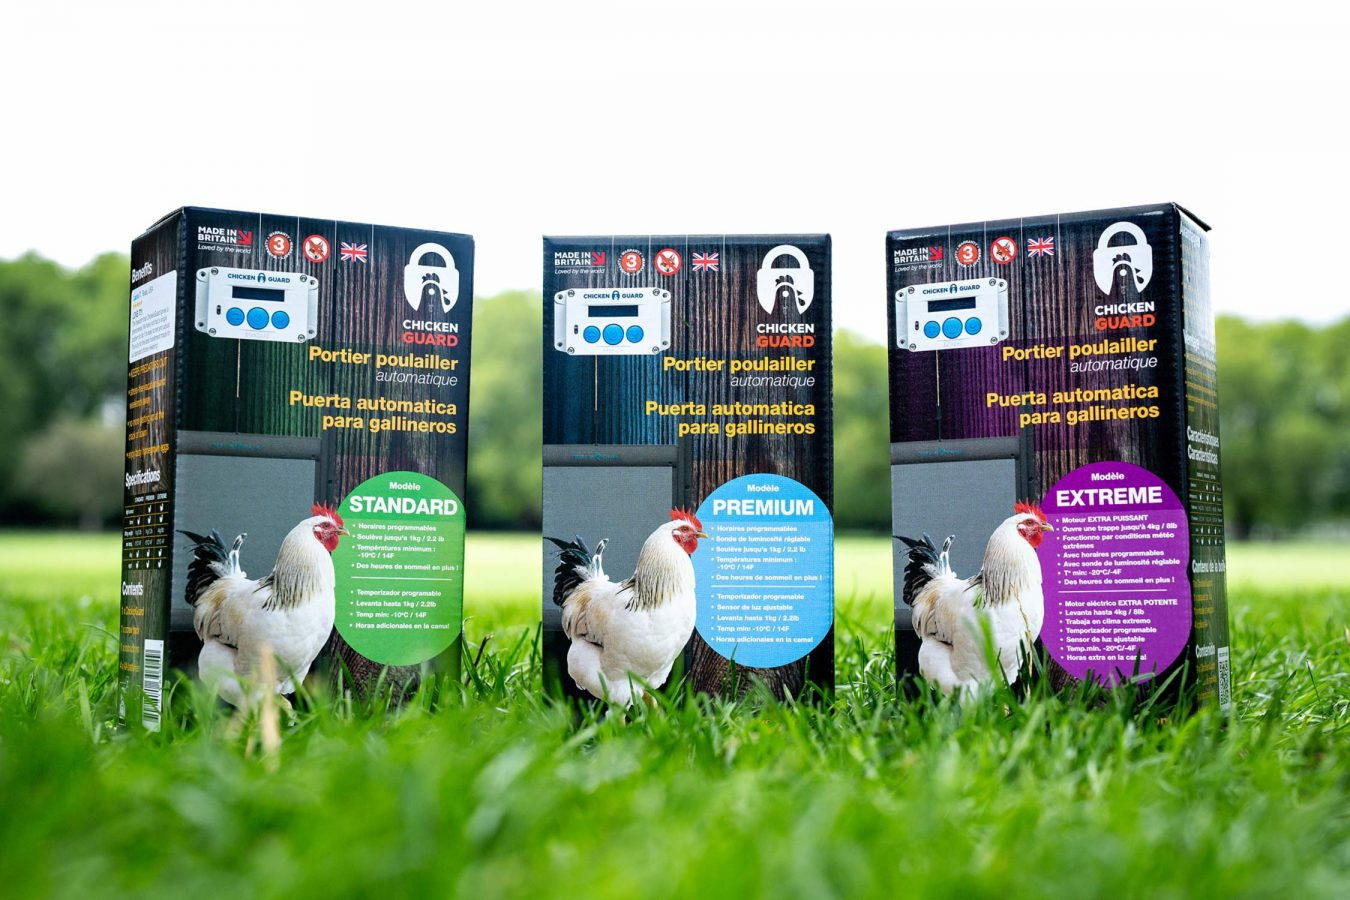 location-product-photography-for-chickenguard